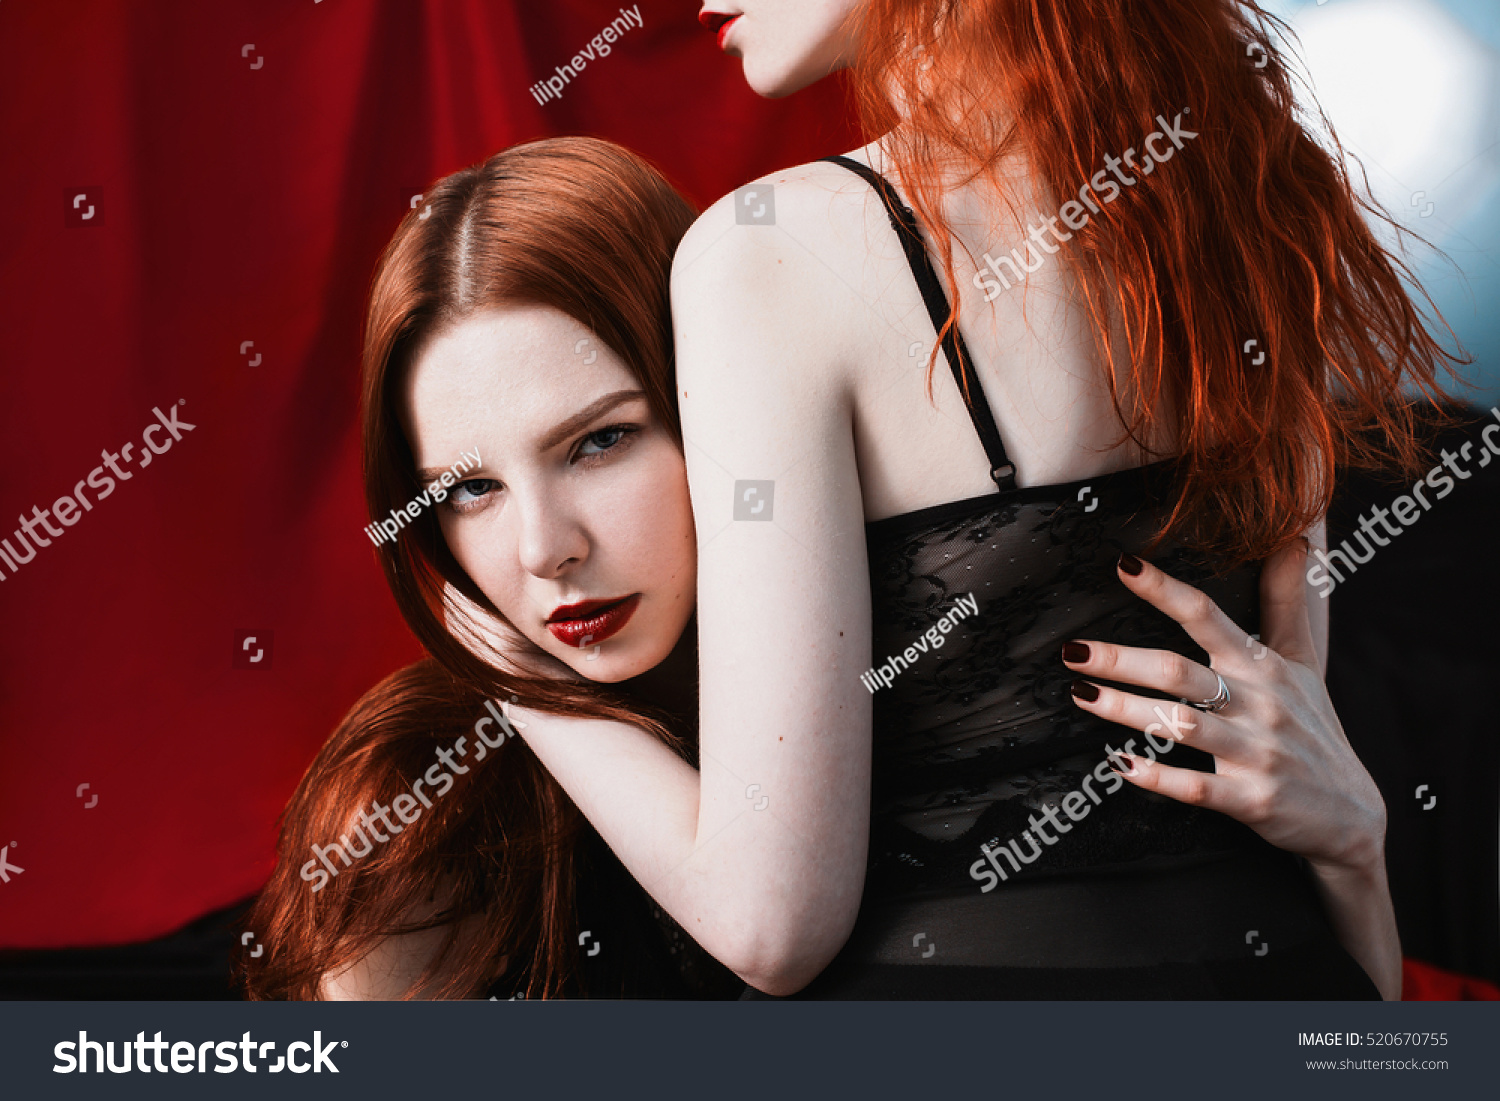 image Hot redhead smoking and anal fucked